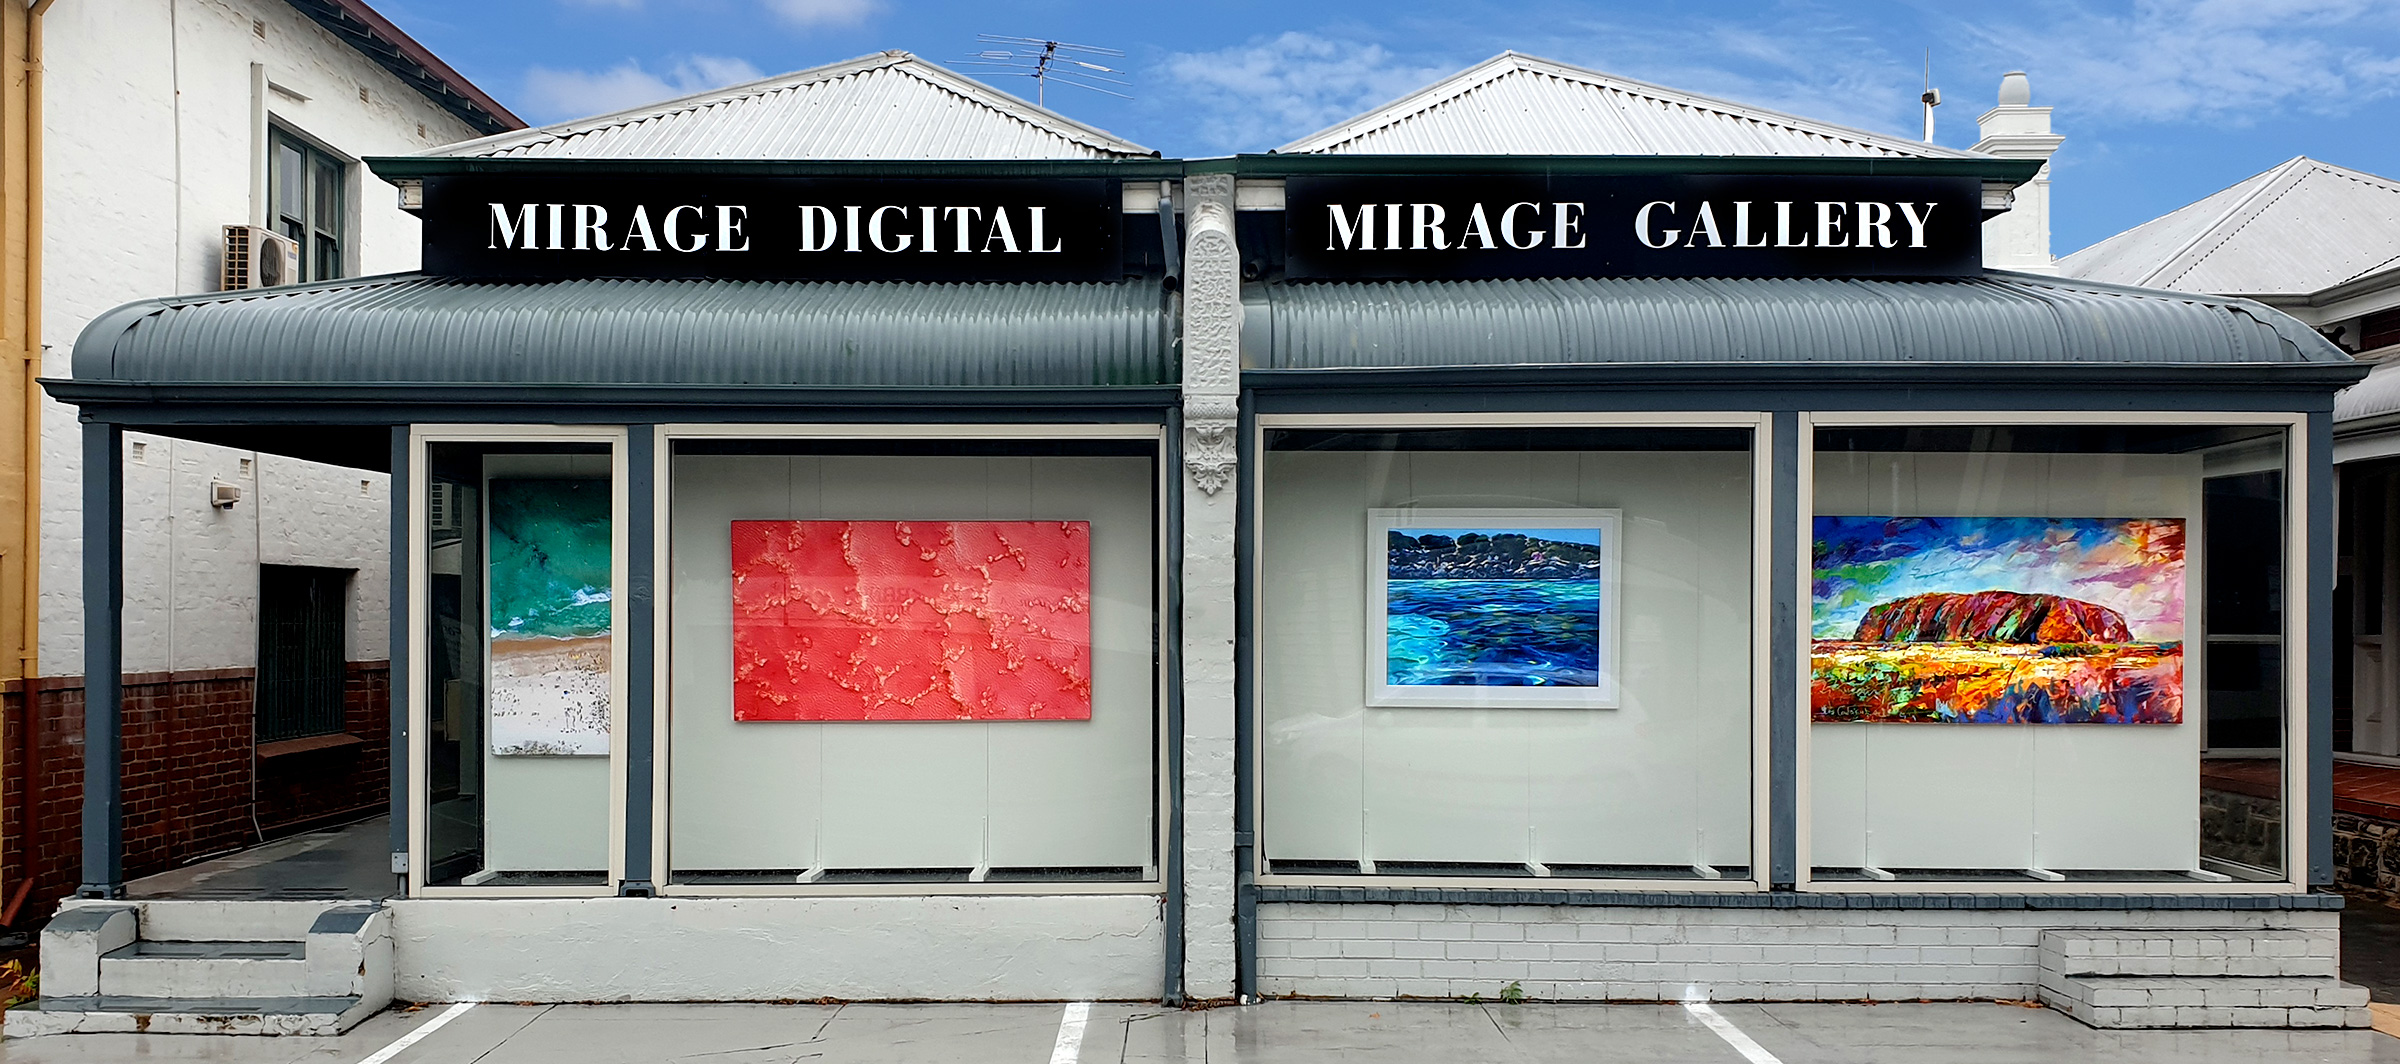 Mirage Gallery Shop Front Display